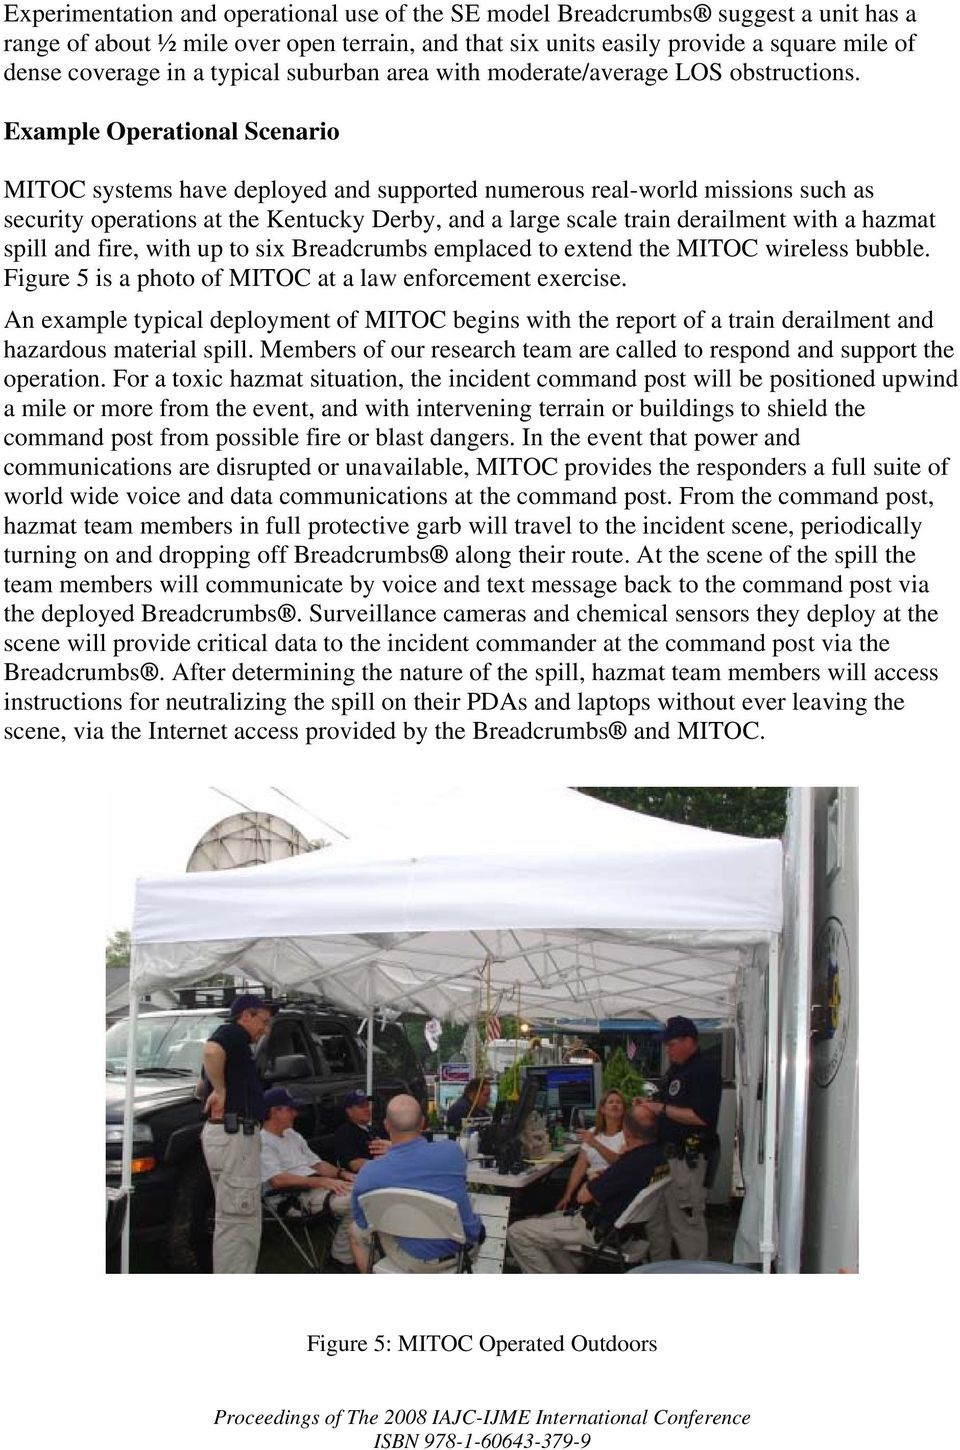 Example Operational Scenario MITOC systems have deployed and supported numerous real-world missions such as security operations at the Kentucky Derby, and a large scale train derailment with a hazmat